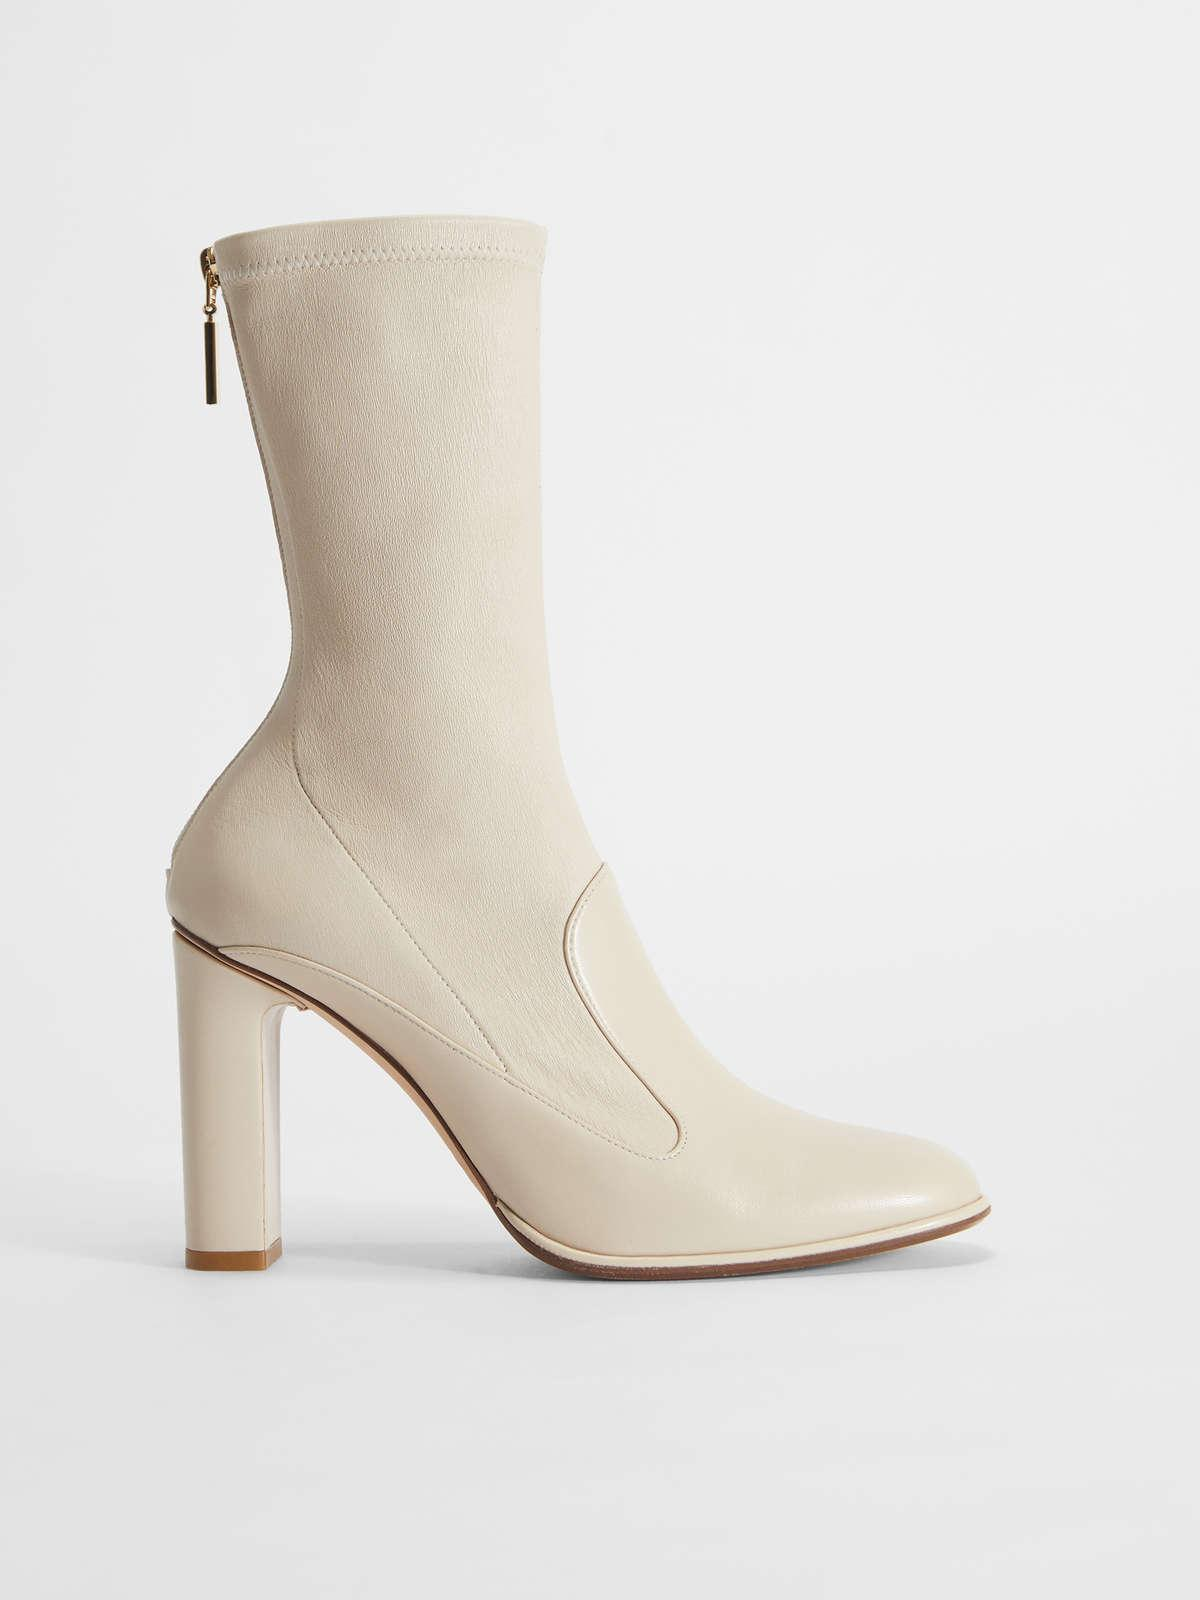 Womens Max Mara Ankle Boots And Boots | Nappa Leather Ankle Boots Albino